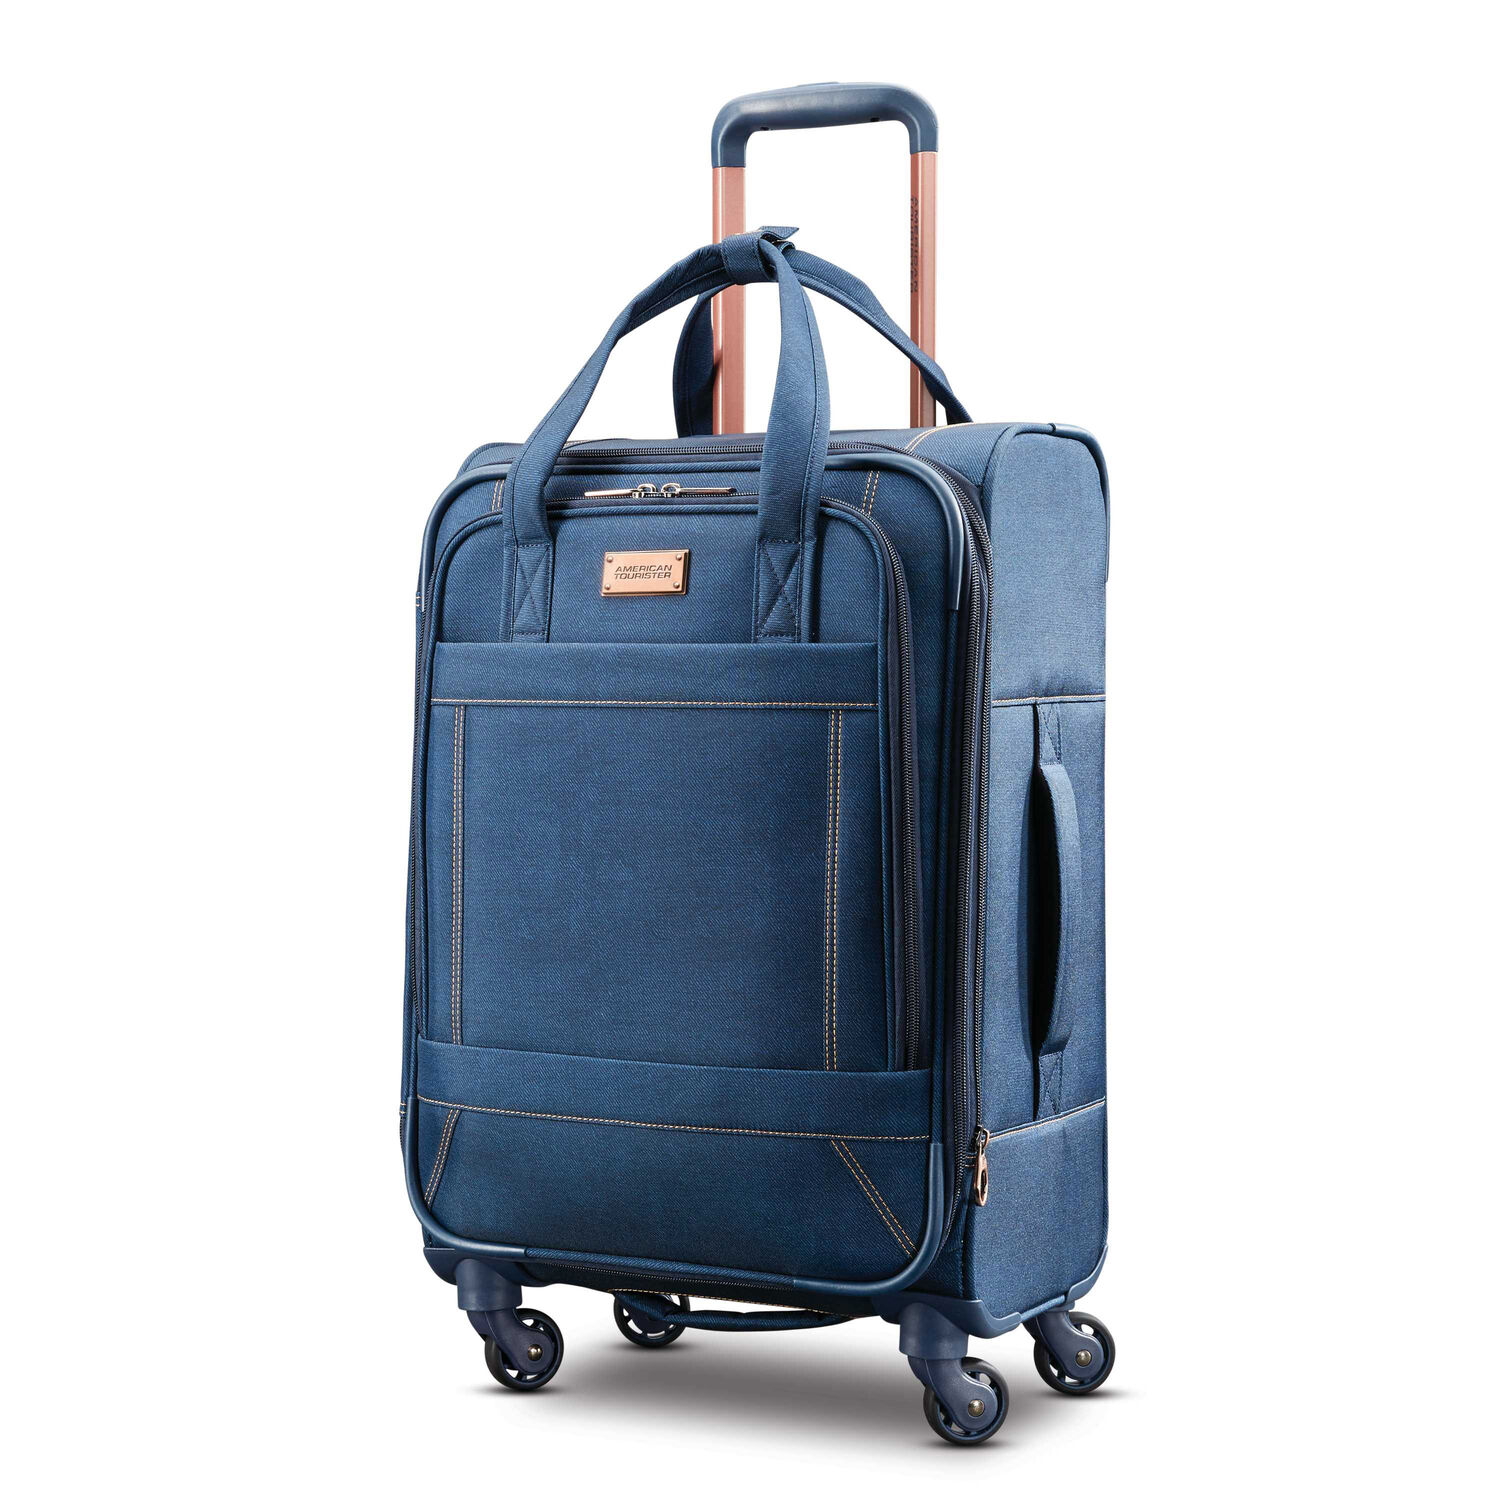 Luggage, Suitcases and Carry-Ons | American Tourister